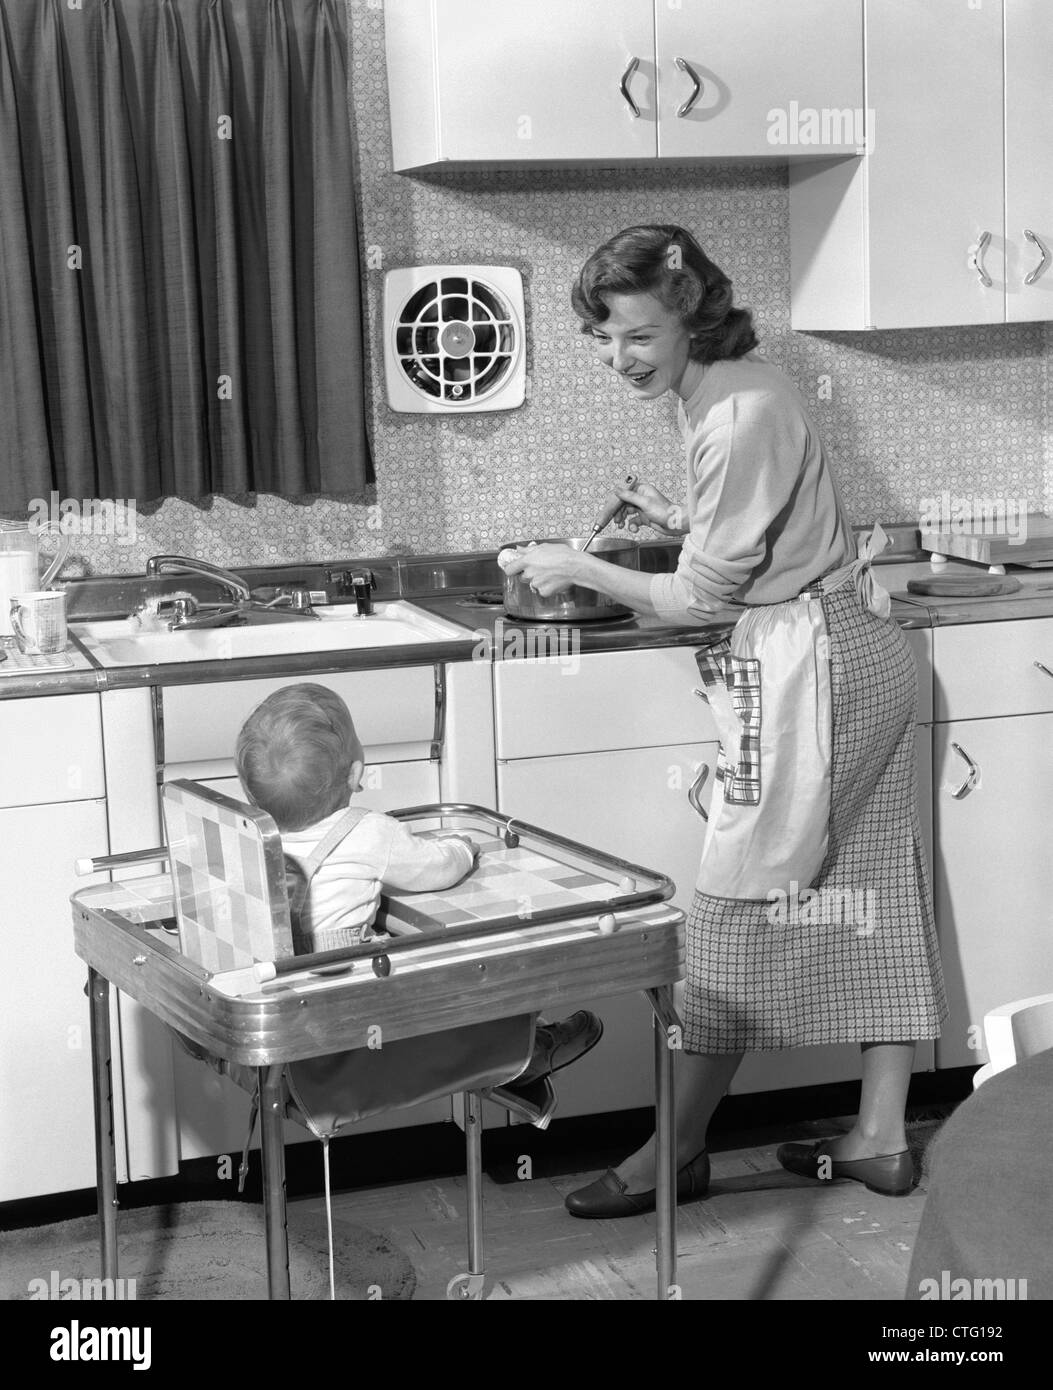 retro high chairs babies joovy portable chair 1950s woman mother in home kitchen cooking pot on stove smiling at baby child